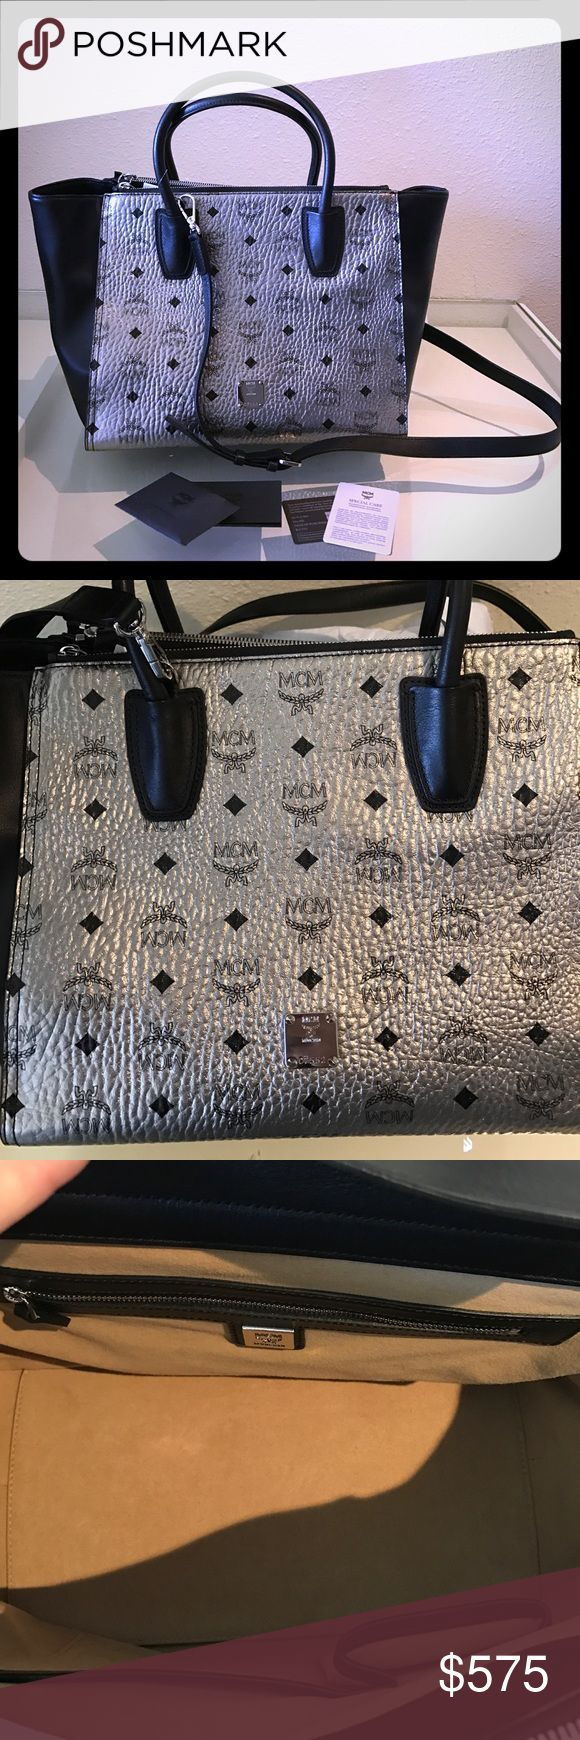 """Authentic MCM Kathy double zip Visetos satchel Gorgeous MCM silver and black handbag originally priced $959 plus tax. Roomy and fits everything in there. Comes with instructions on how to take care of this beautiful bag! Never been used. Does not come with dust bag.  Double handles, detachable adjustable crossbody strap Snap closure; lined Interior zip pocket, interior slip pocket, interior cell phone pocket, two exterior zip compartments 17""""L x 8""""W x 10""""H; 5"""" handle drop, 23"""" strap drop. No…"""